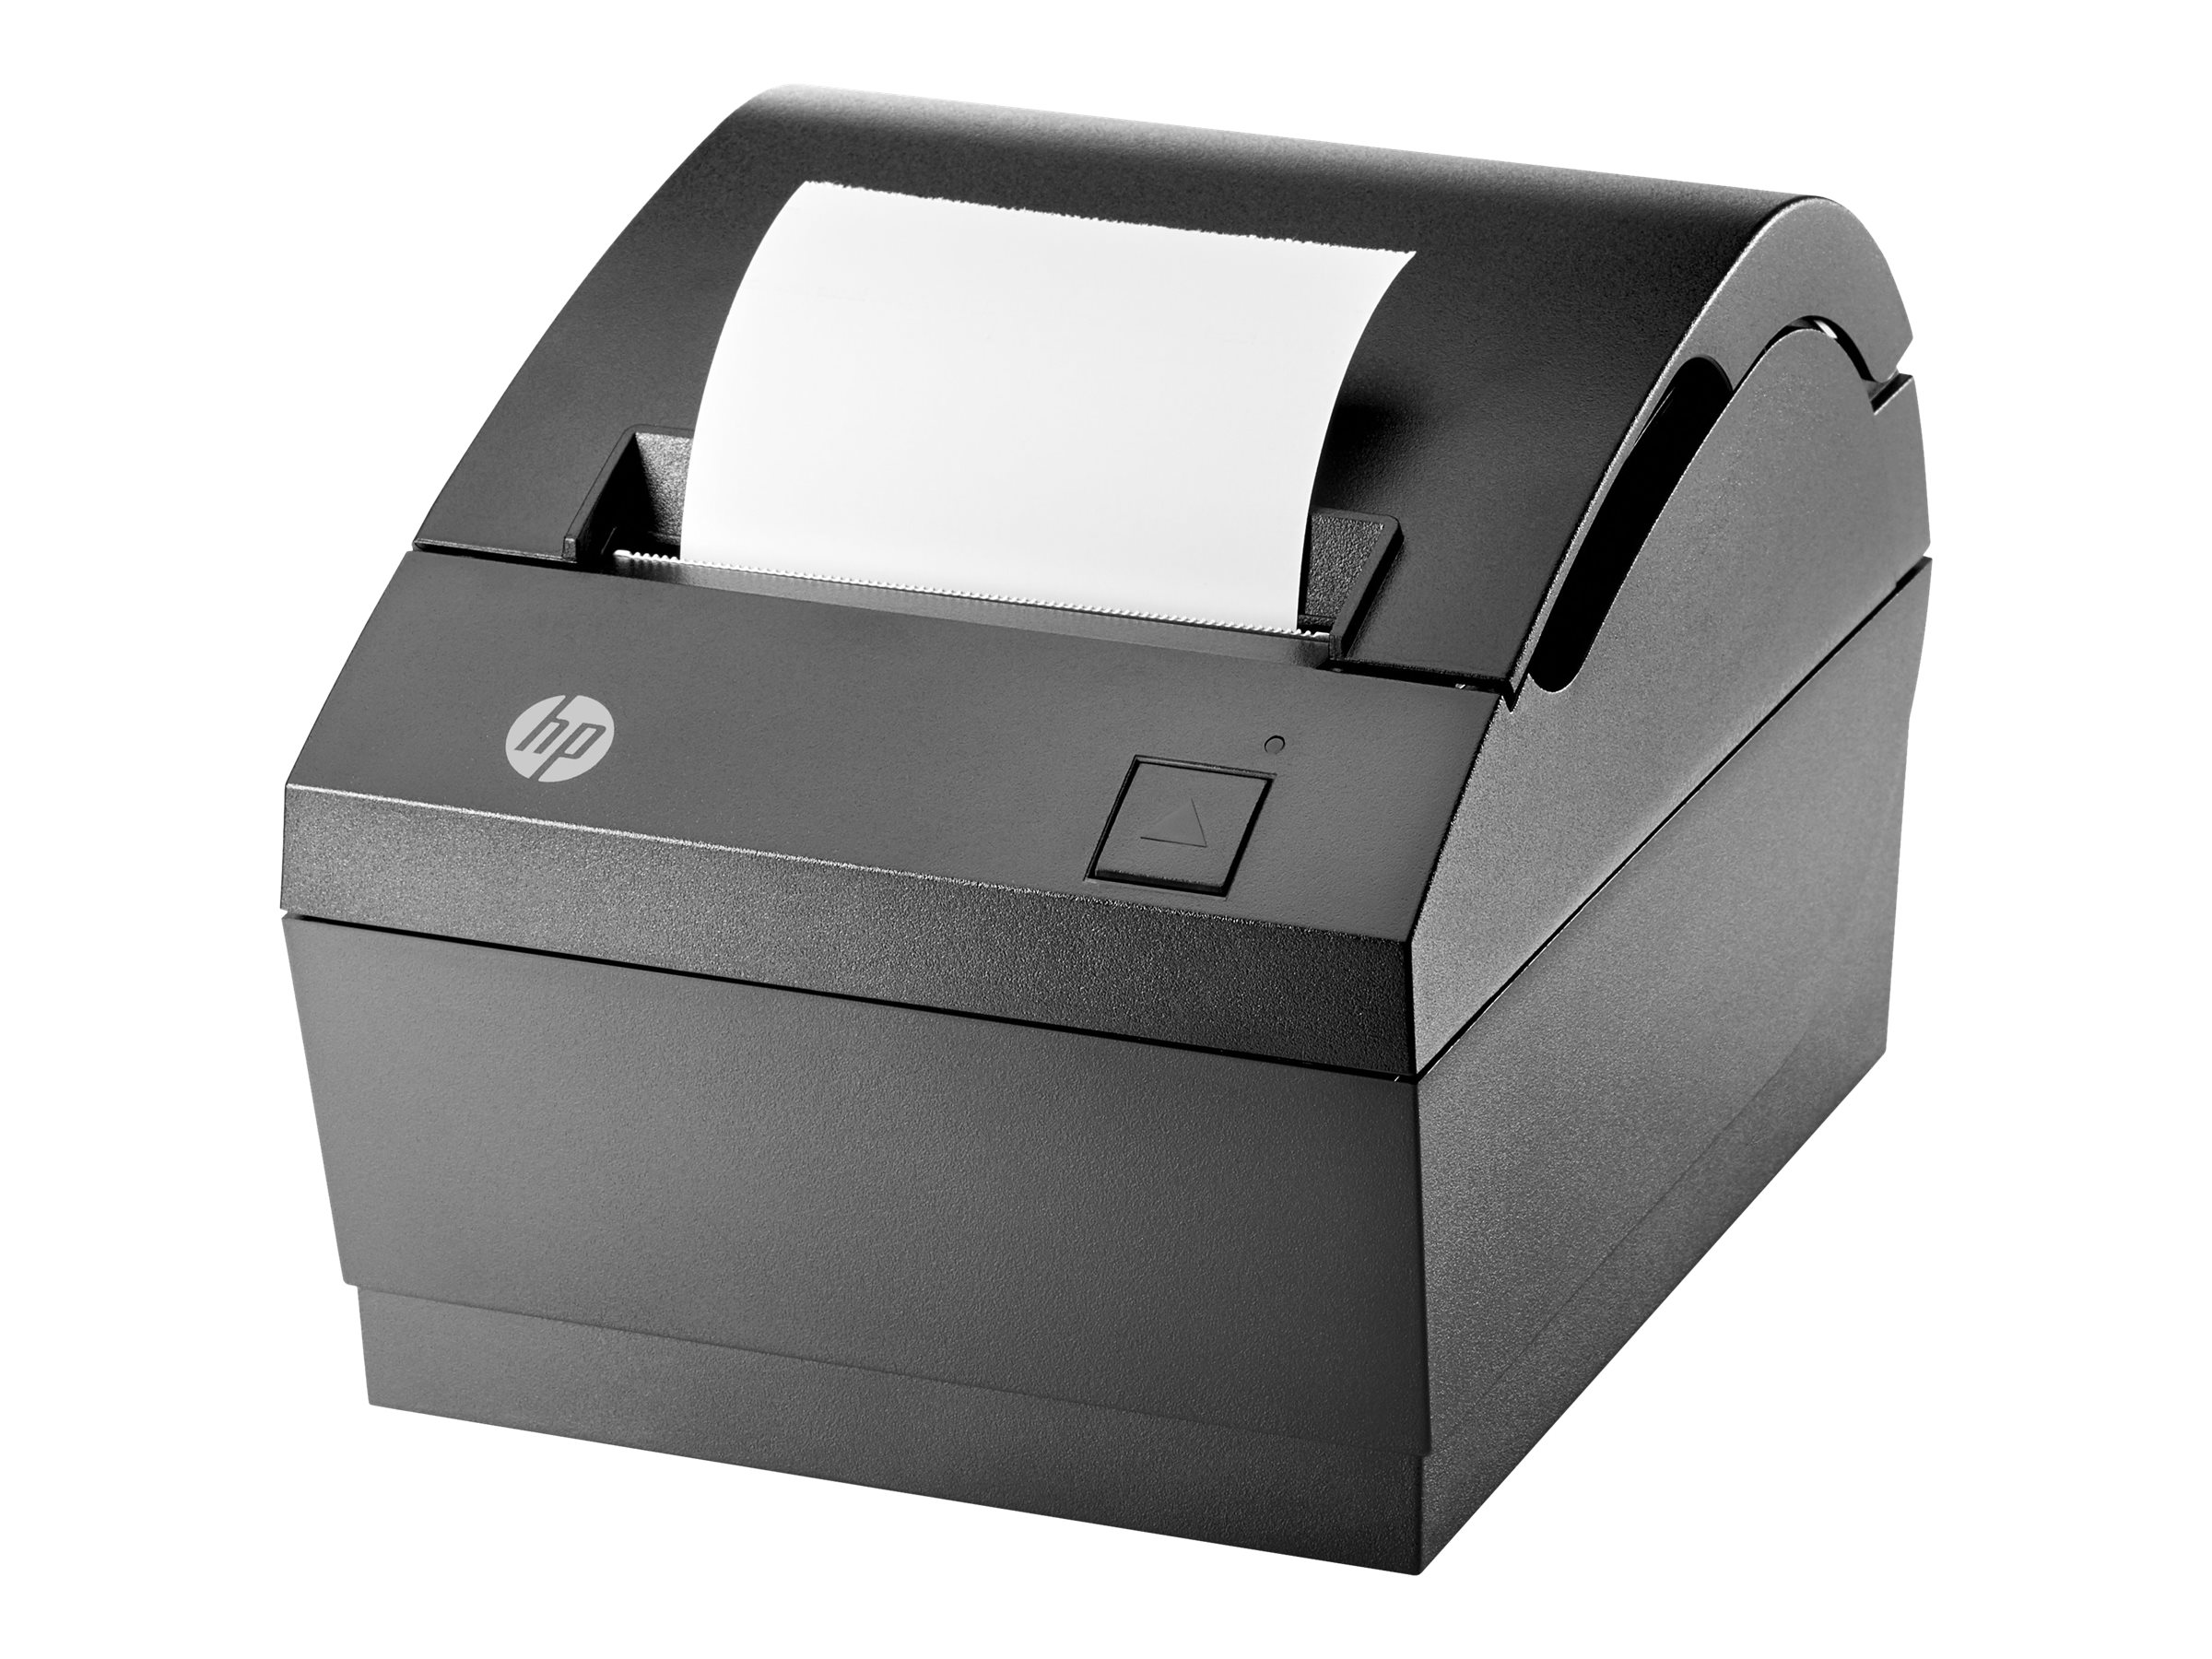 HP Value Receipt Printer II - Belegdrucker